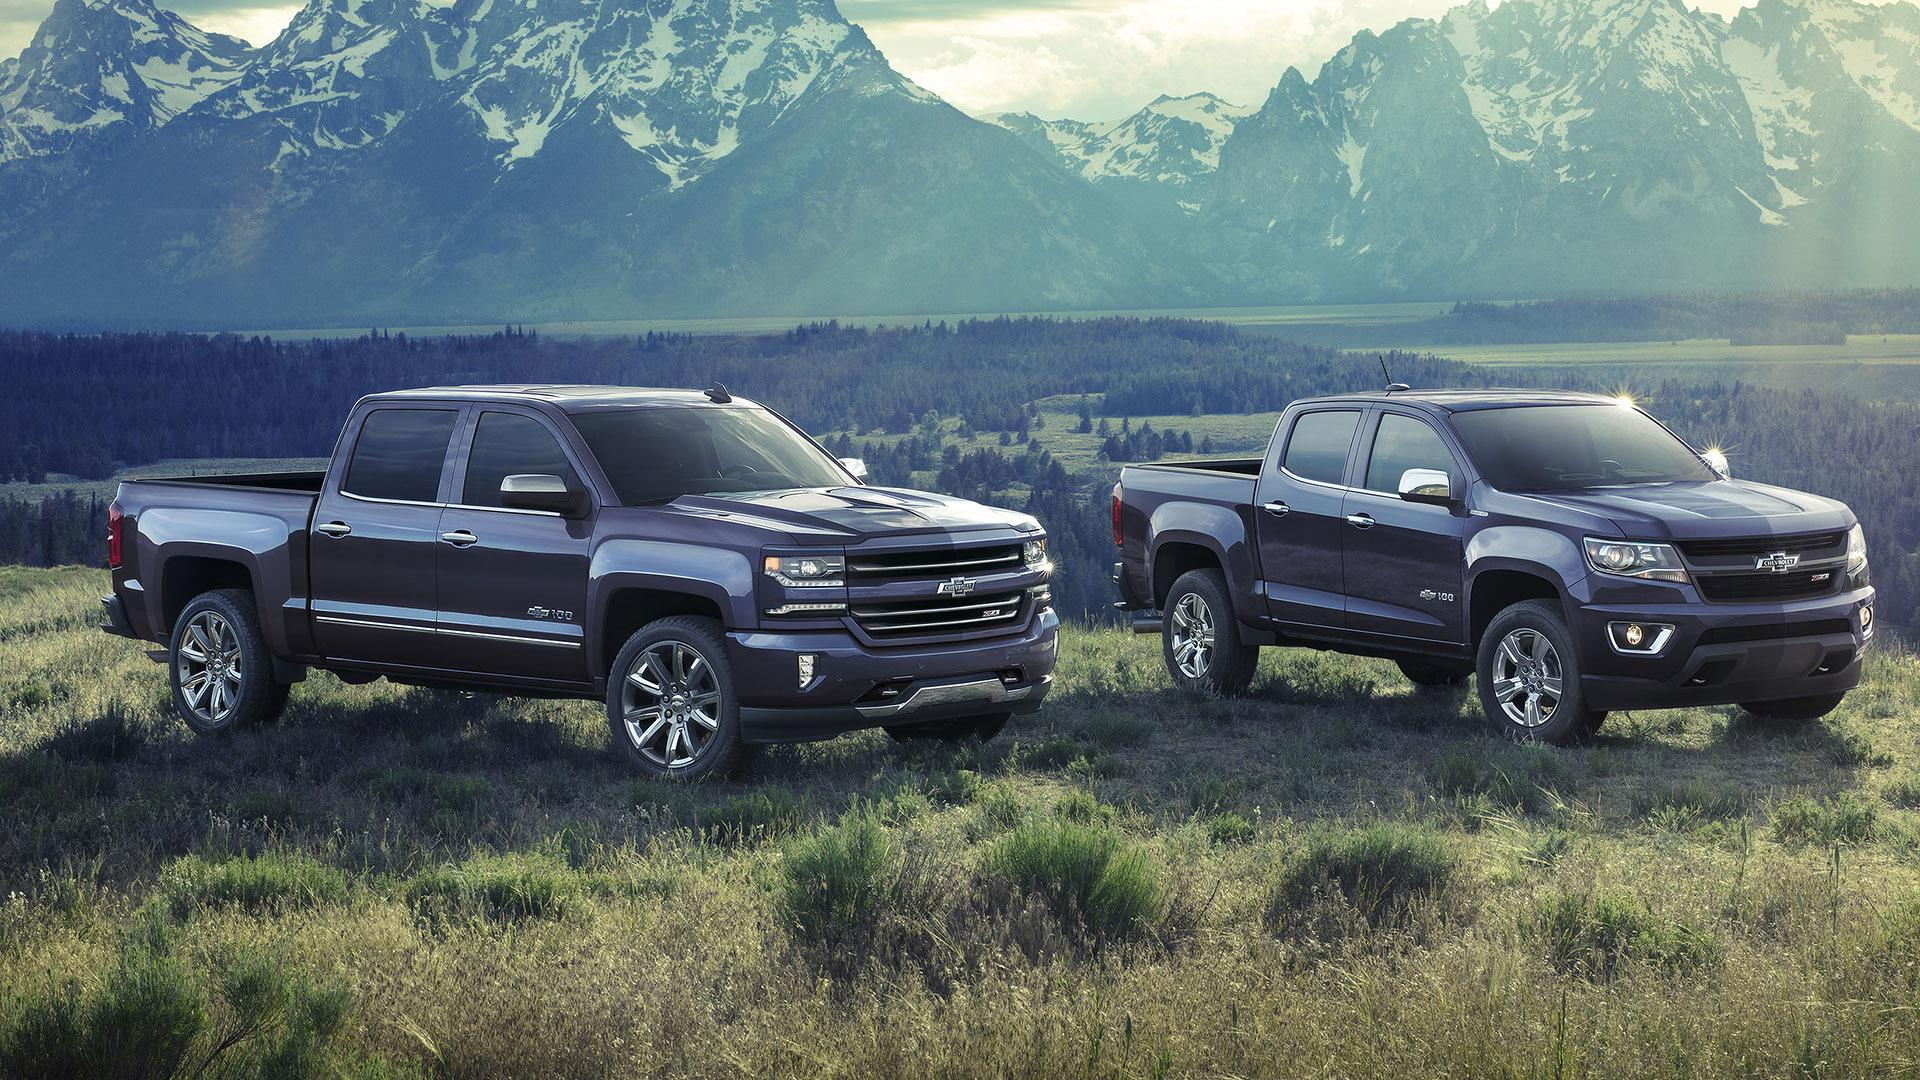 2018 Centennial Edition Silverado and Colorado - To commemorate 100 years of Chevy Trucks, both trucks offer Centennial Blue exterior paint color, exclusive front and rear heritage bowties and 100 year door badges, which were inspired by colors and design cues found on early Chevrolet Trucks. Centennial Editions also include a spray-in bedliner with heritage bowtie emblem and accessory floor liners with heritage bowtie emblems.